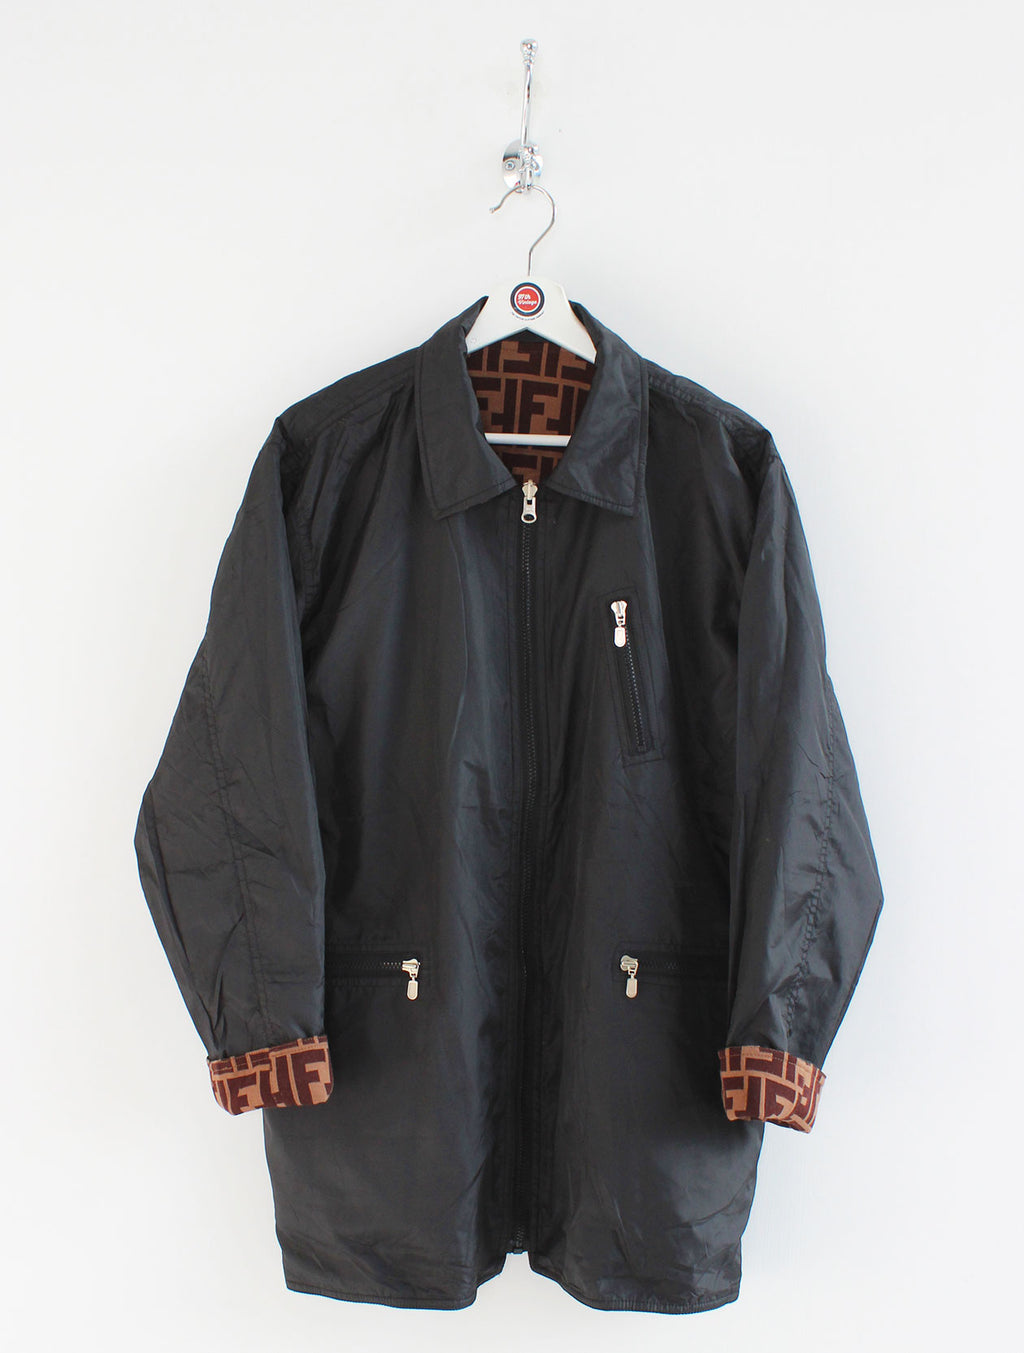 Fendi Reversible Jacket (M)